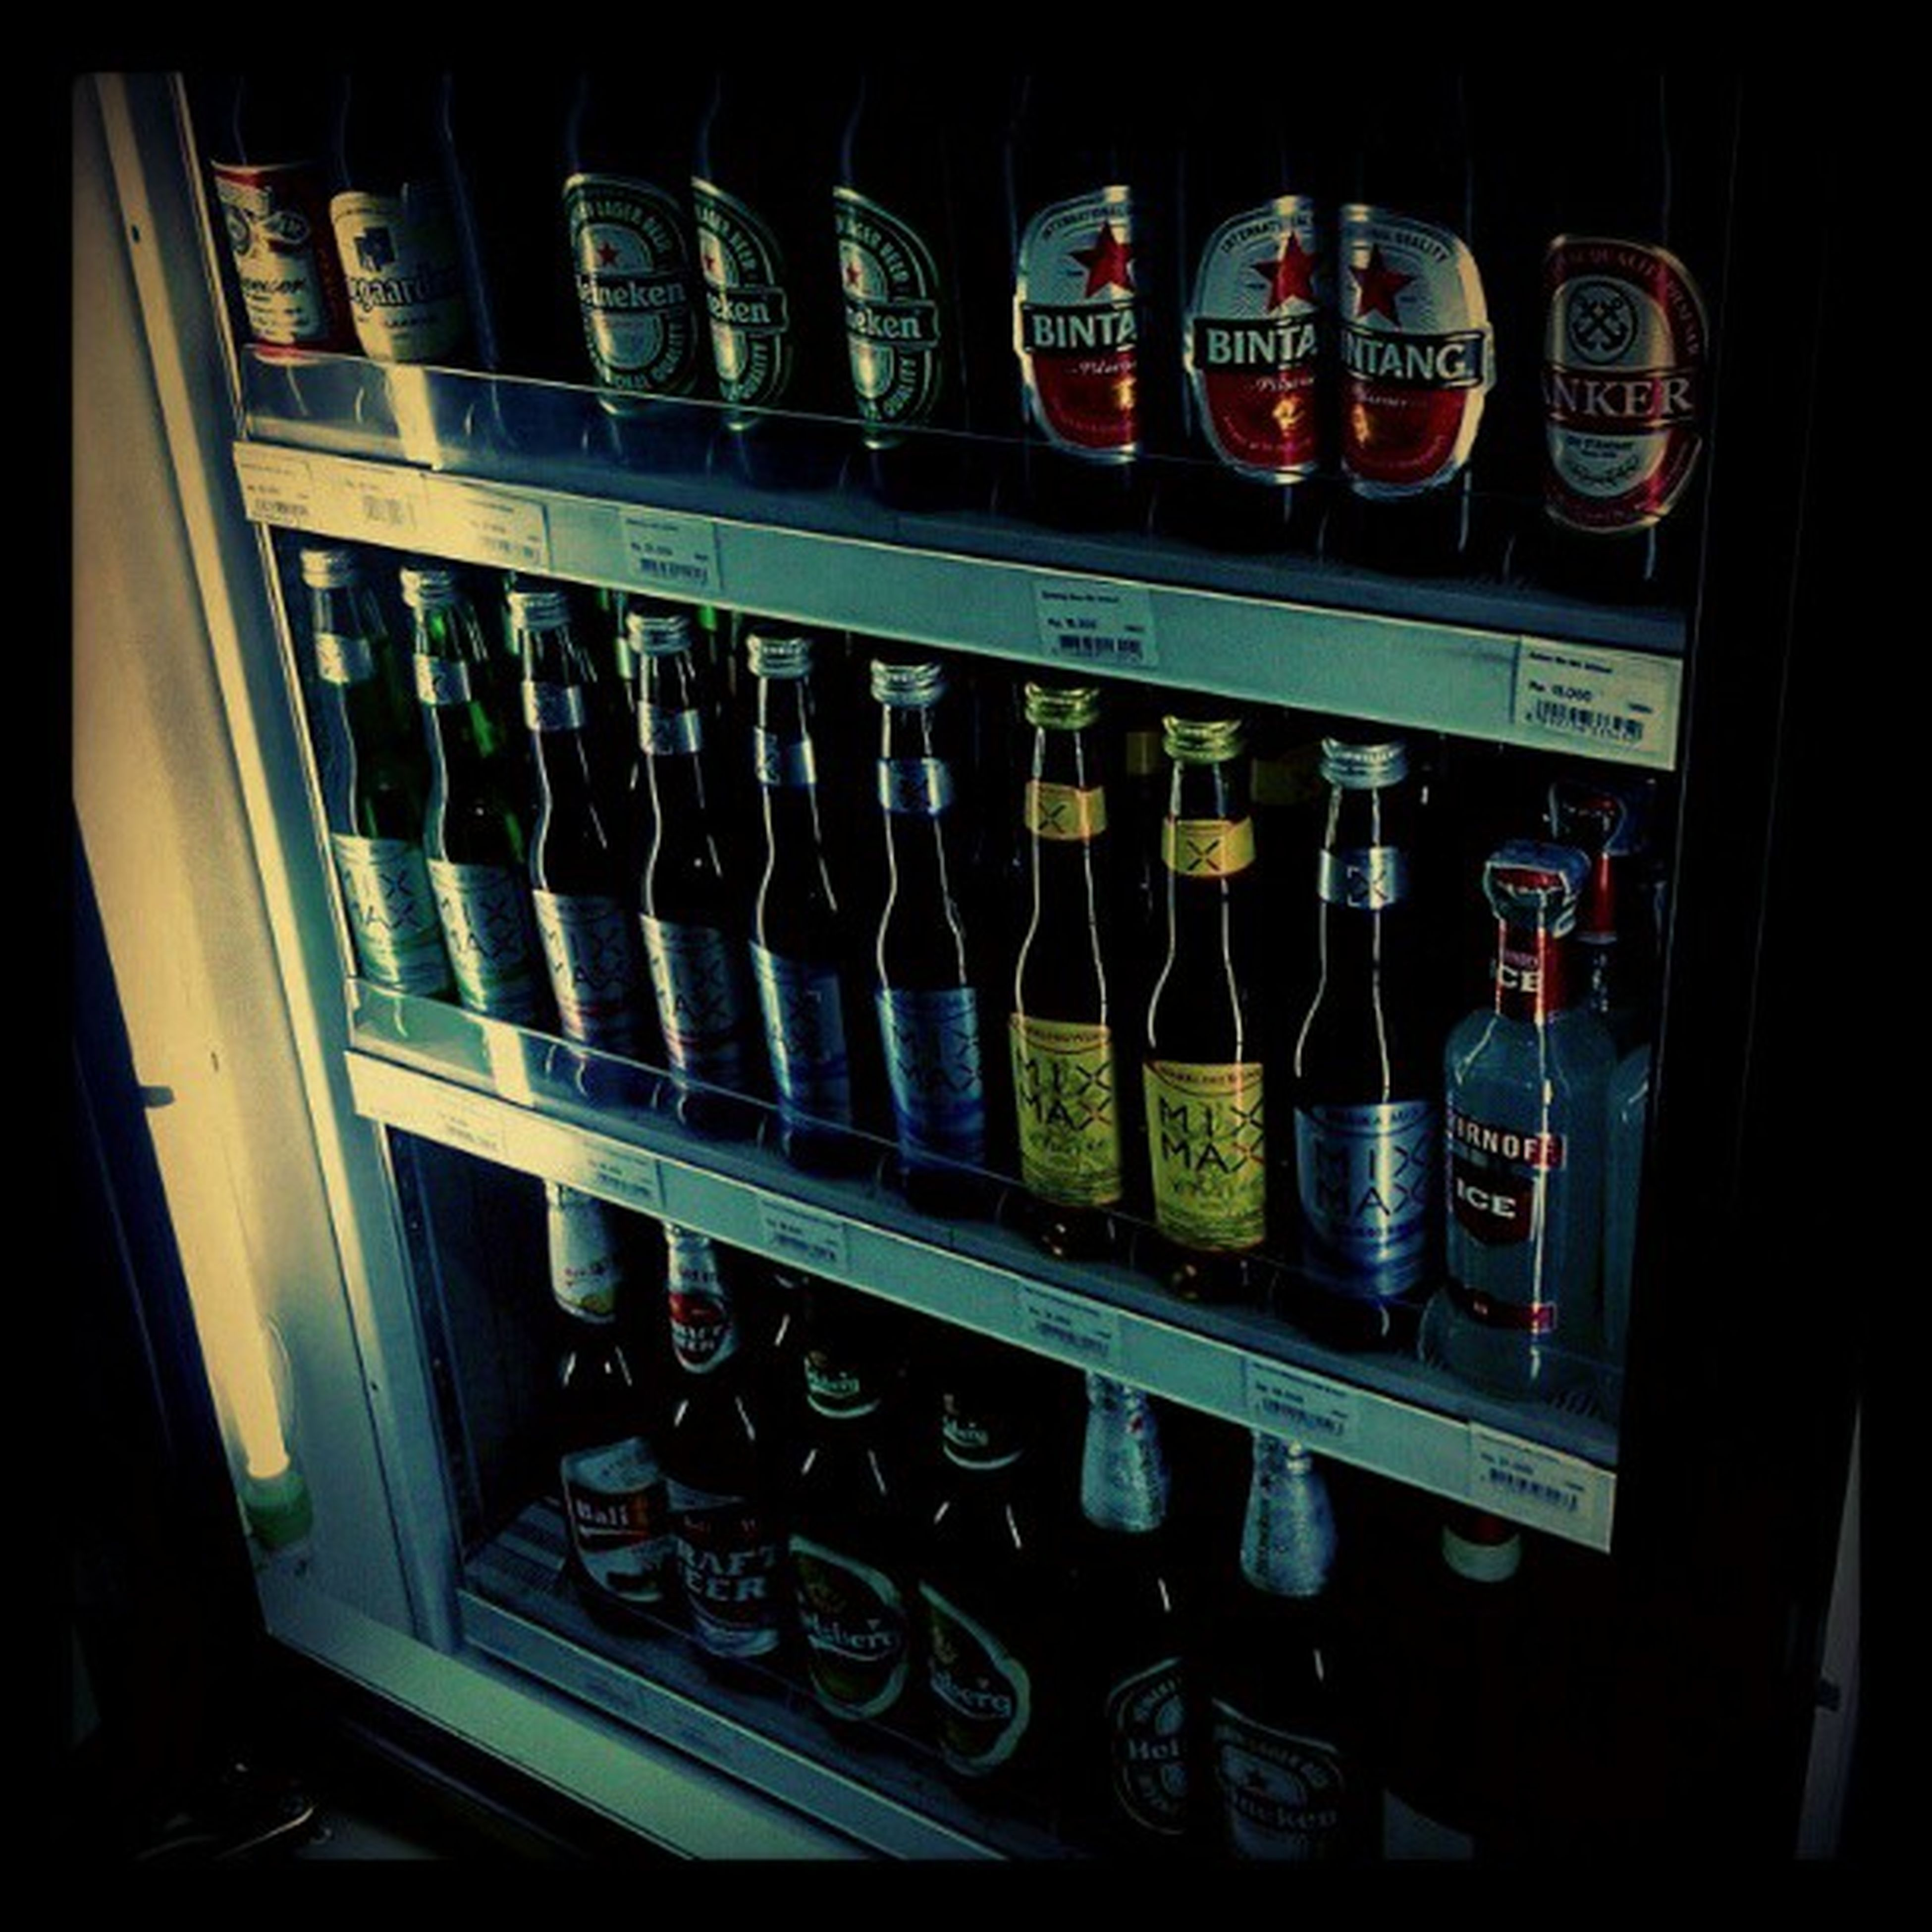 indoors, in a row, arrangement, shelf, order, large group of objects, abundance, choice, variation, text, window, repetition, store, no people, low angle view, glass - material, side by side, retail, hanging, still life